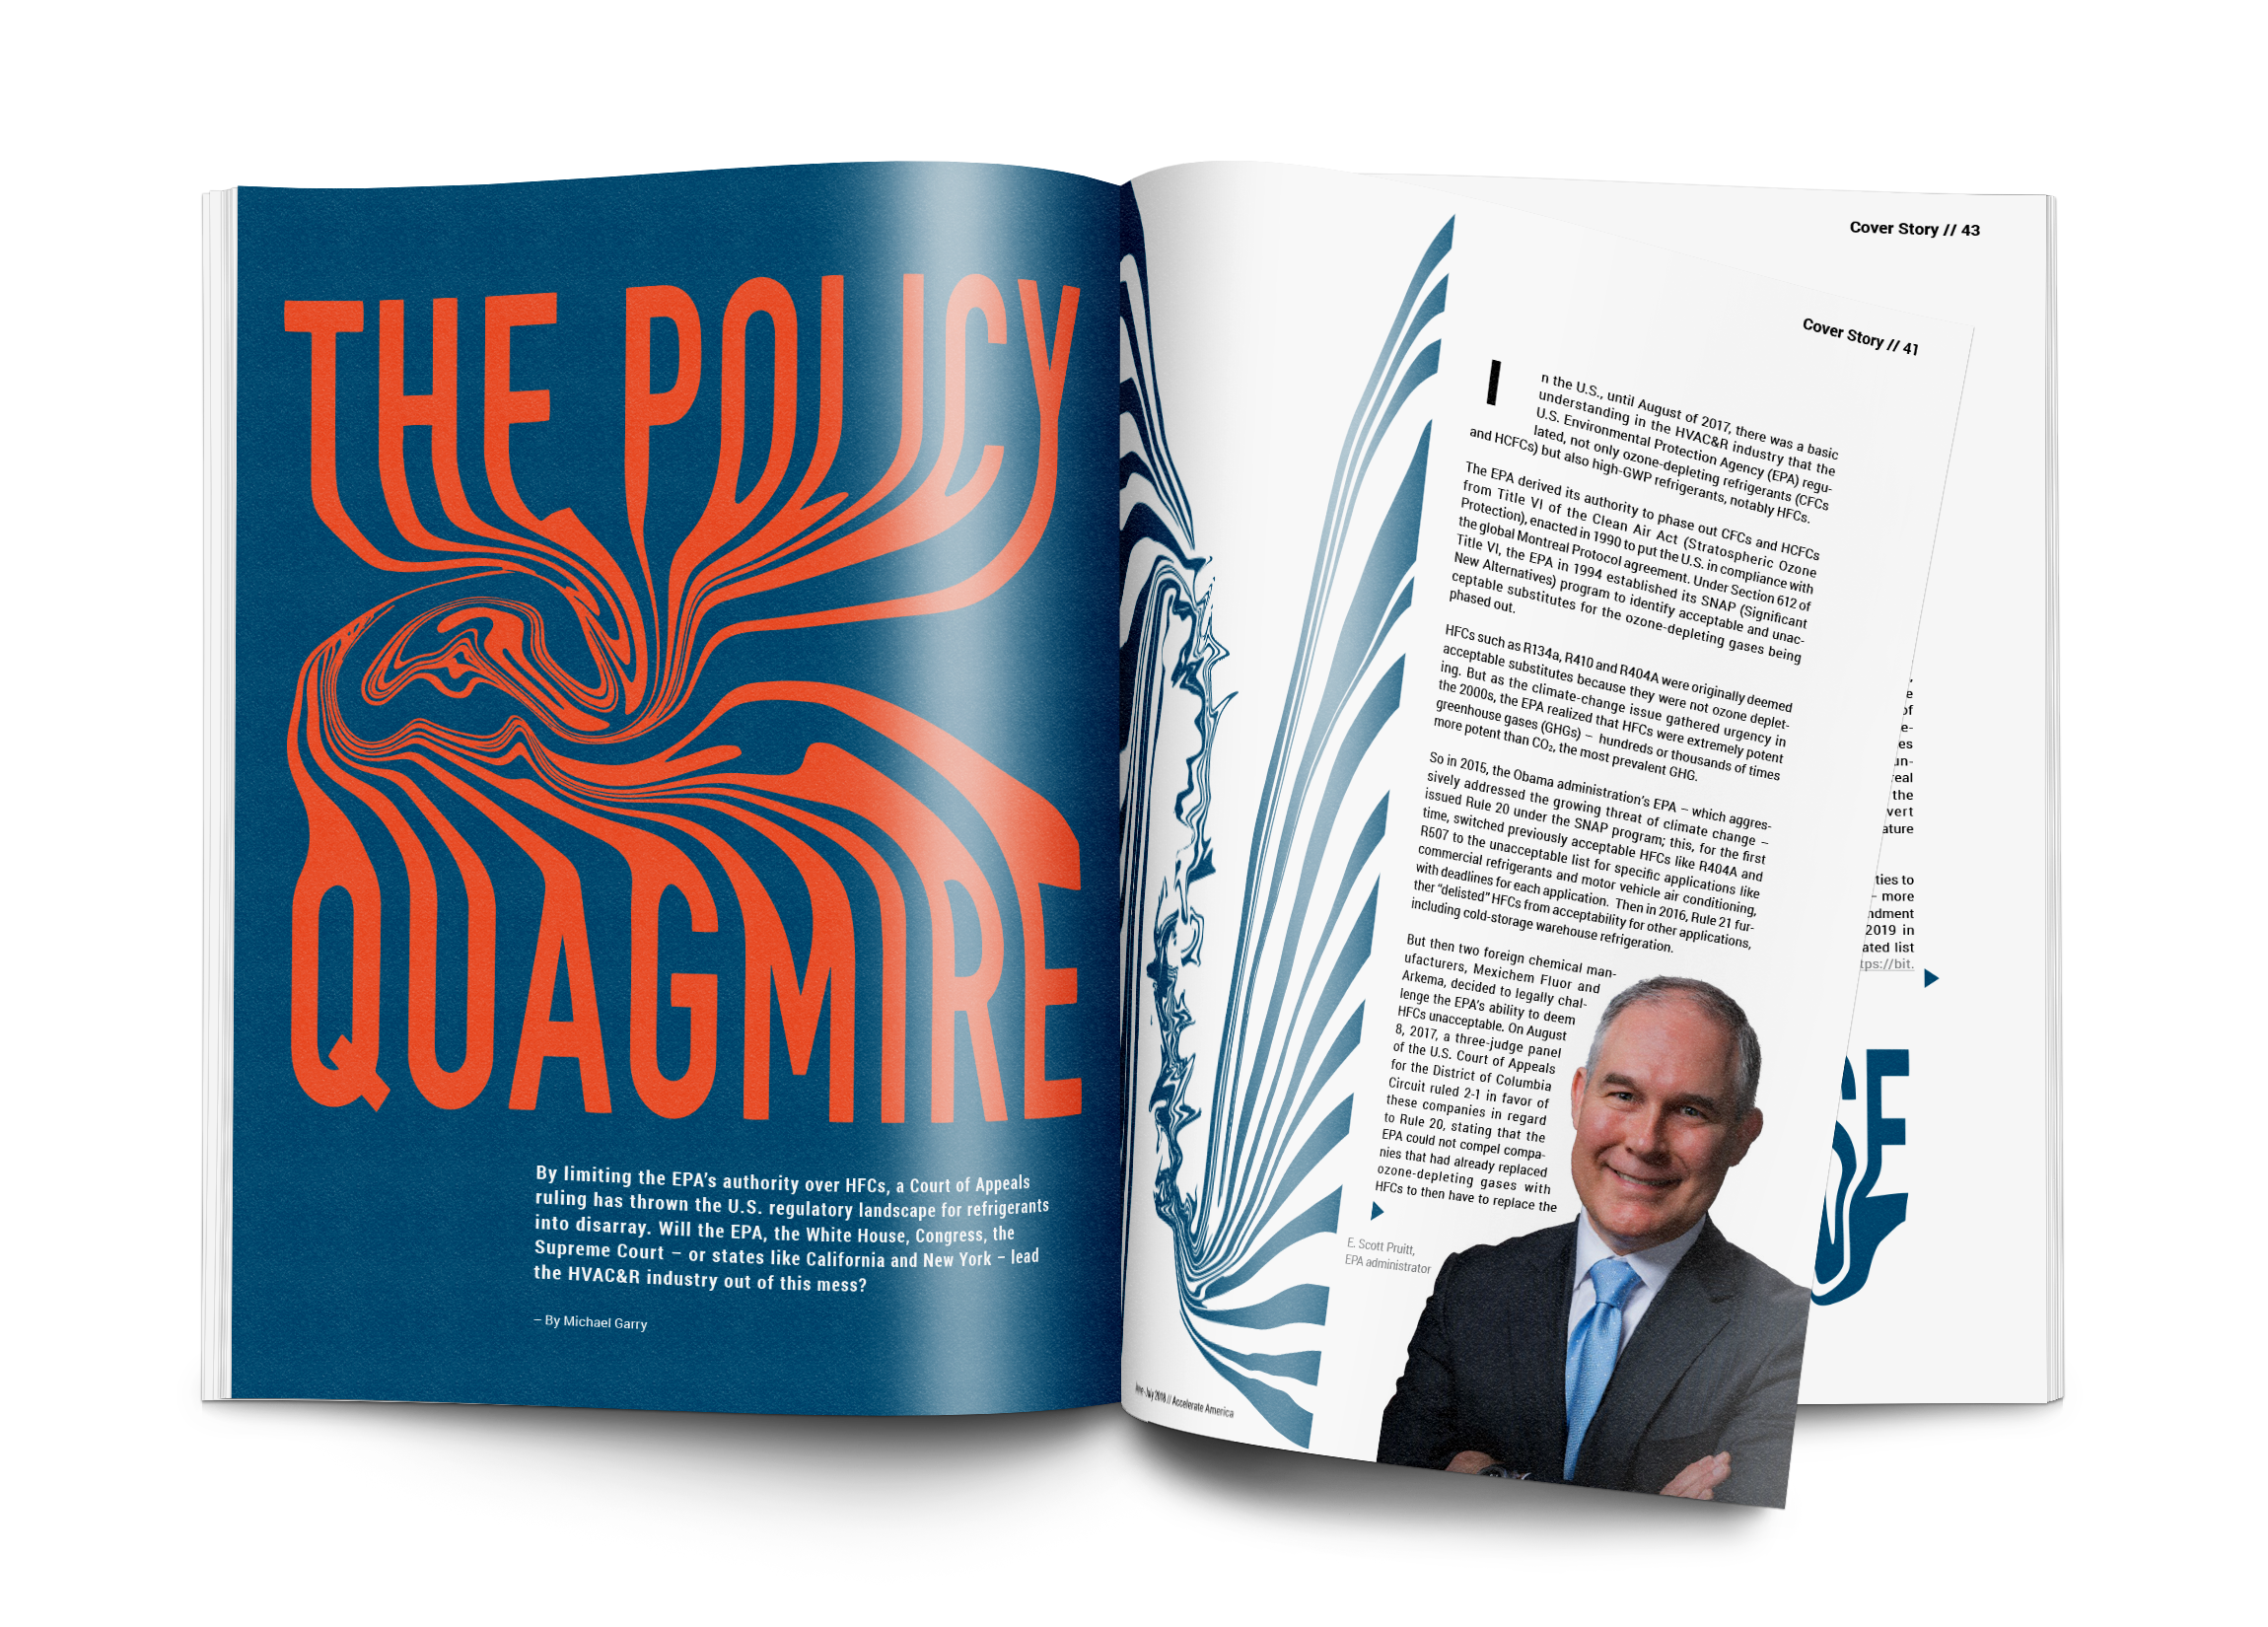 The Policy Quagmire